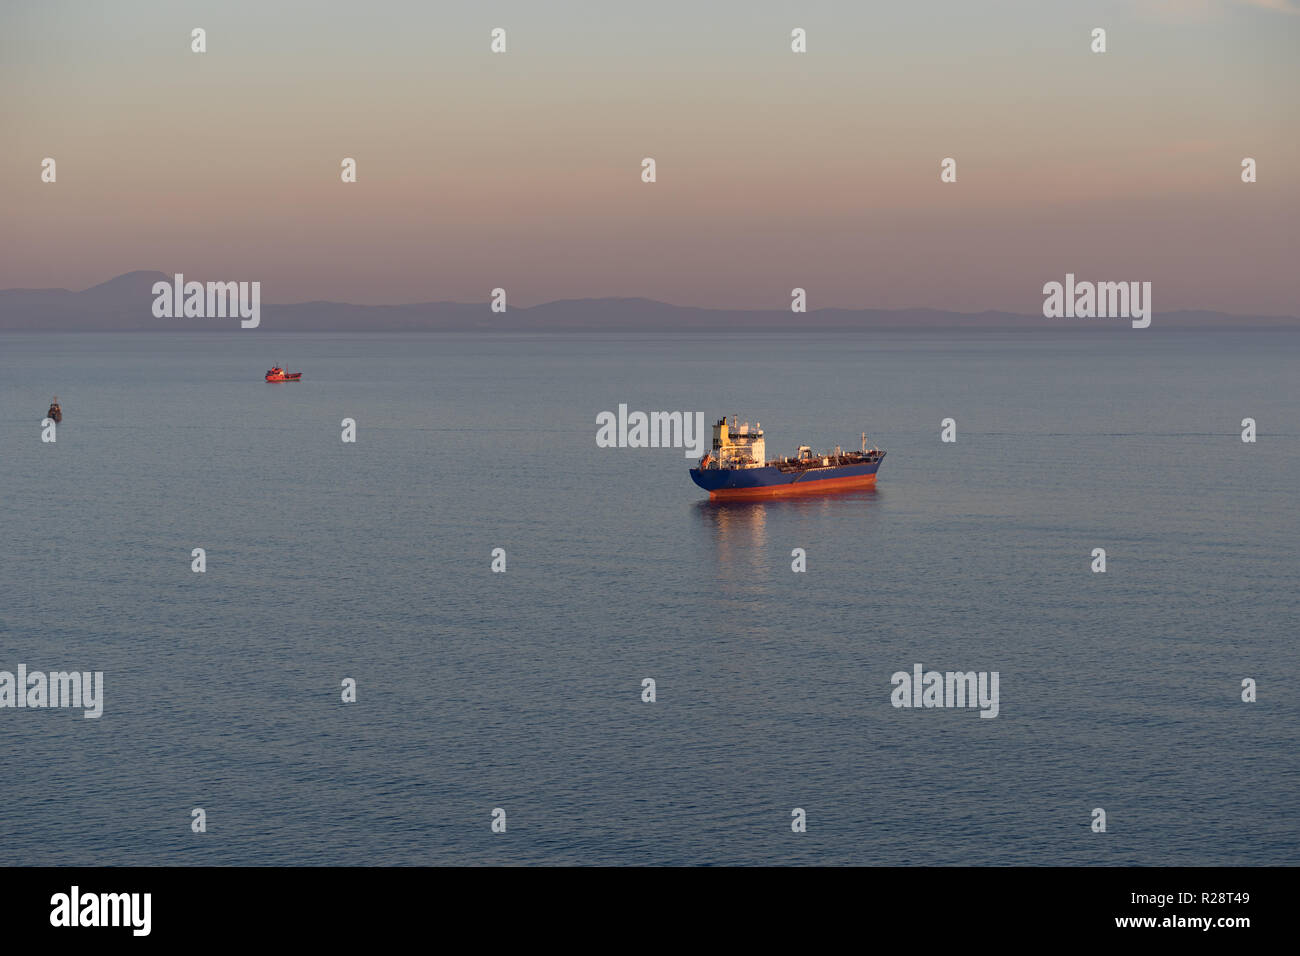 Seascape with tanker and ships on the background of the sea and coastline. Vladivostok, Russia - Stock Image